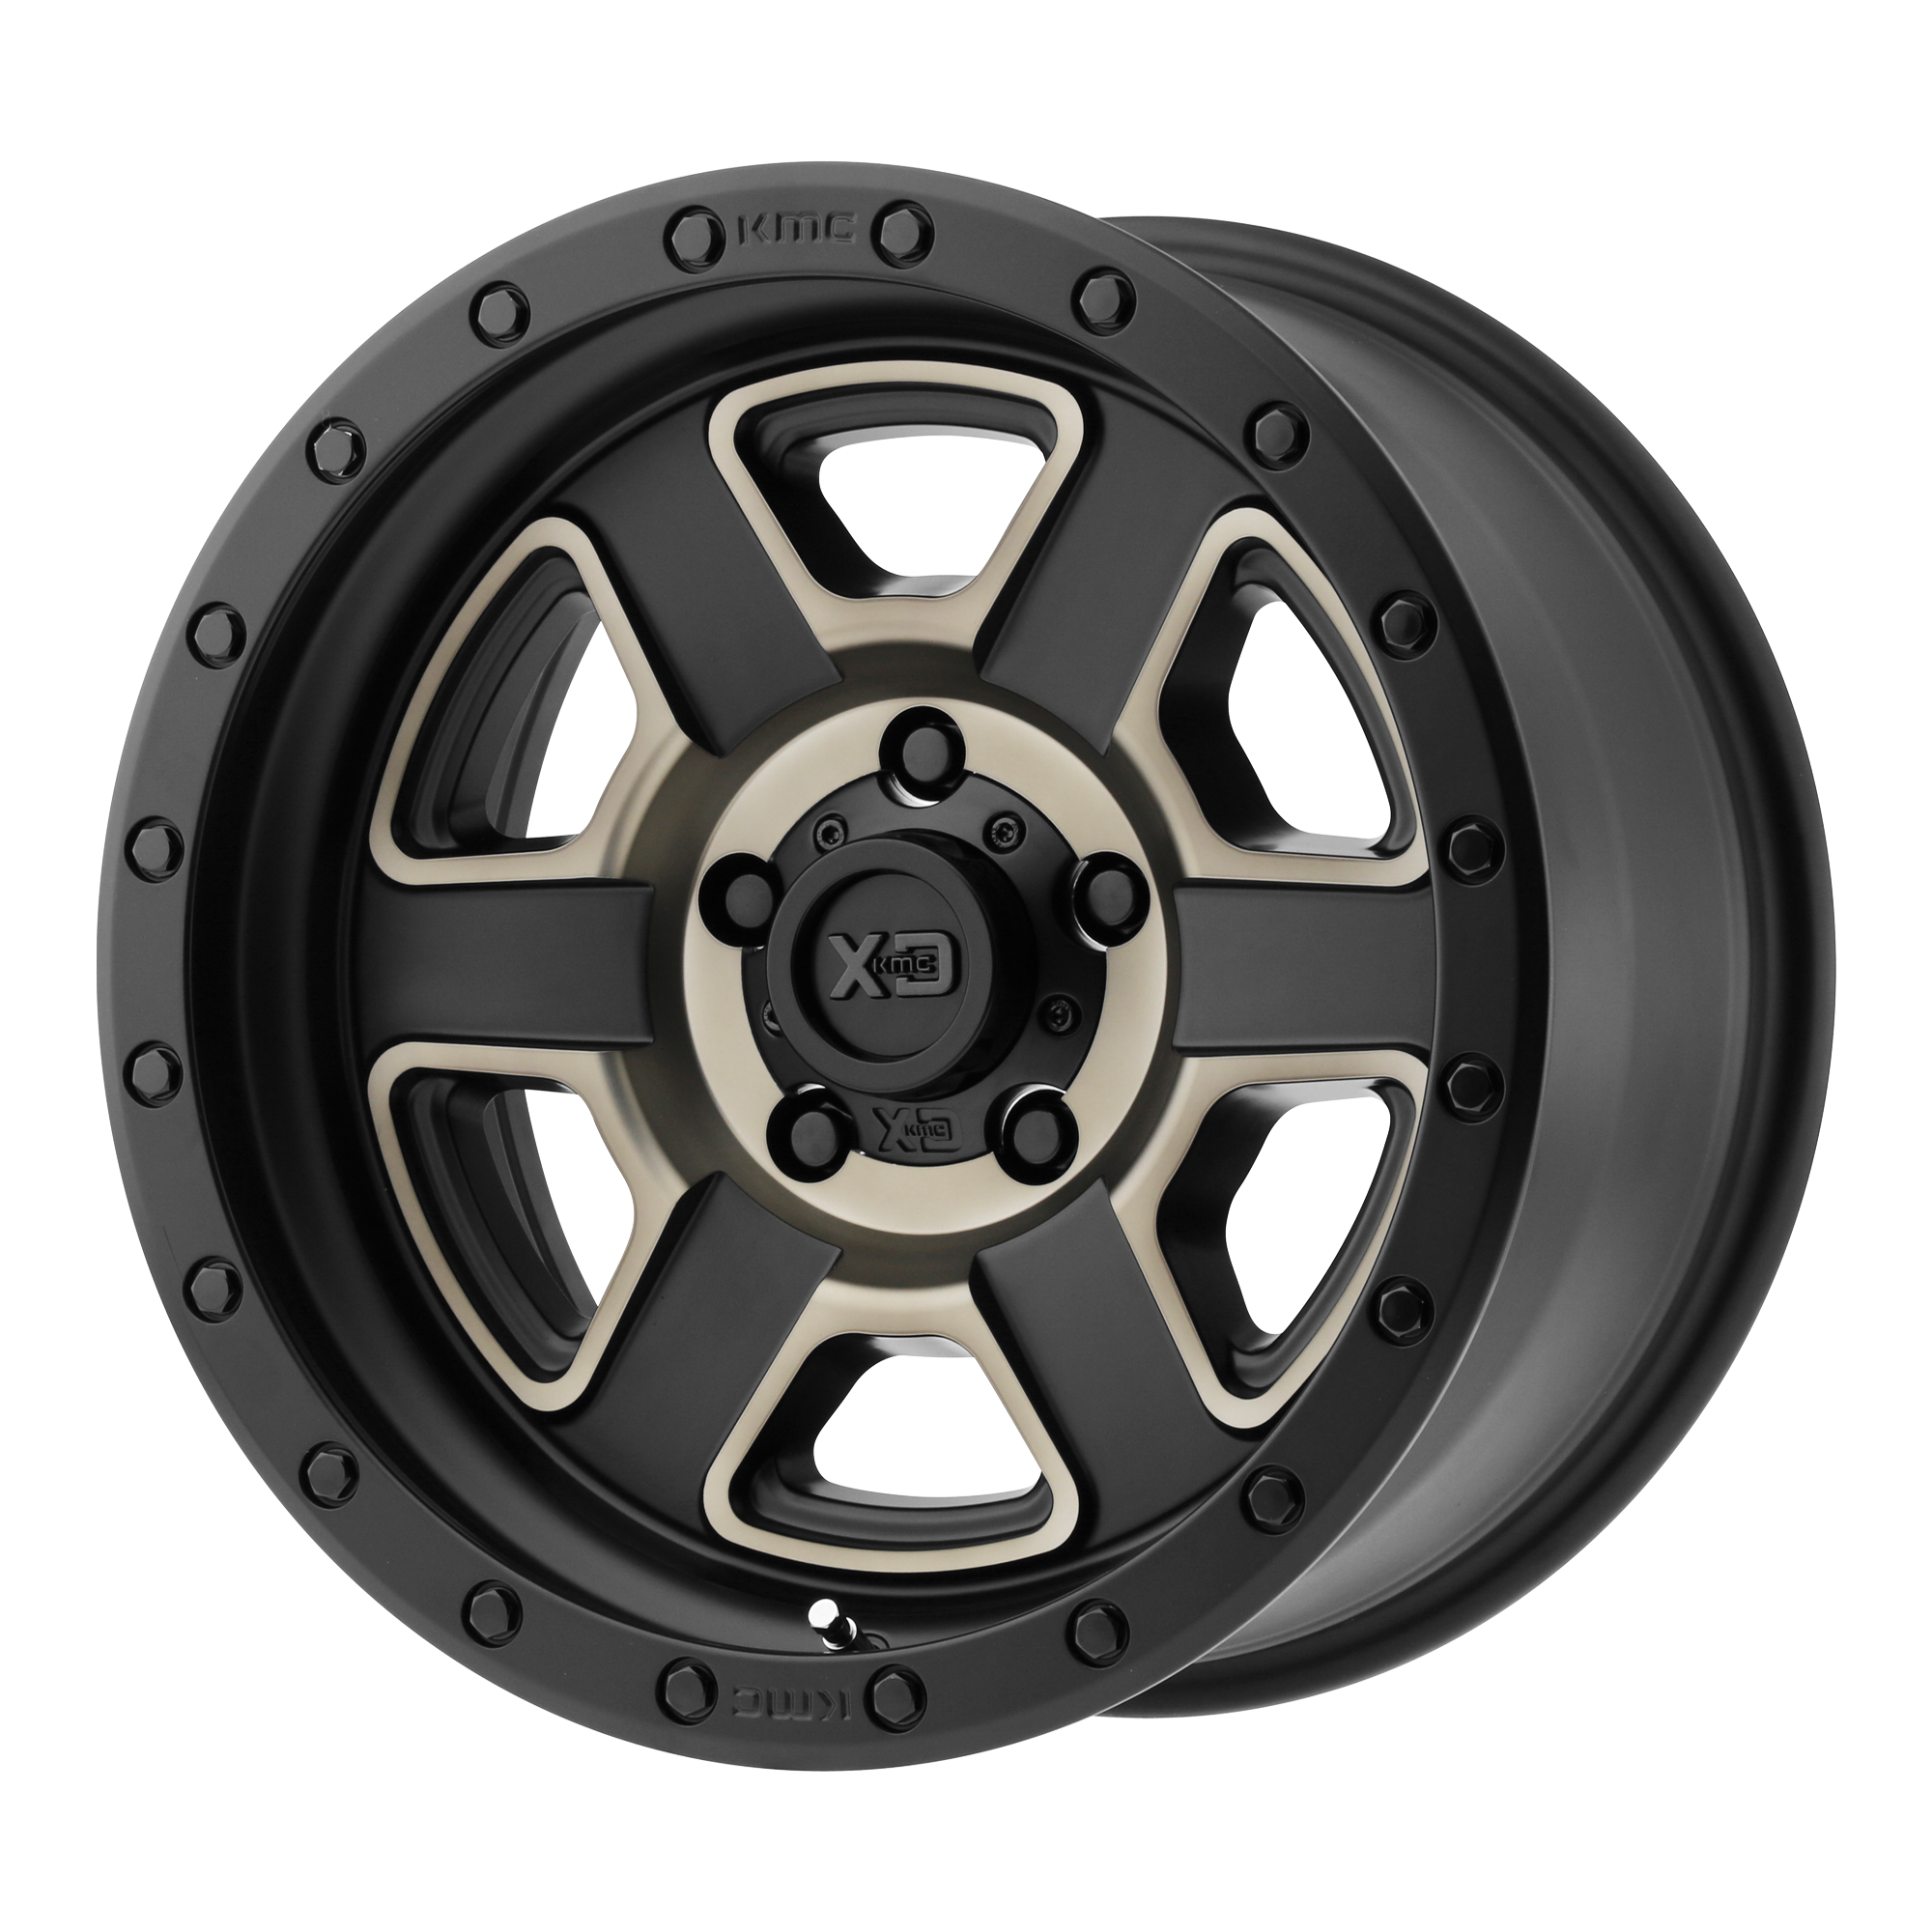 XD SERIES XD133 FUSION OFF-ROAD hliníkové disky 9x17 5x127 ET-12 Satin Black Machined With Dark Tint Clear Coat